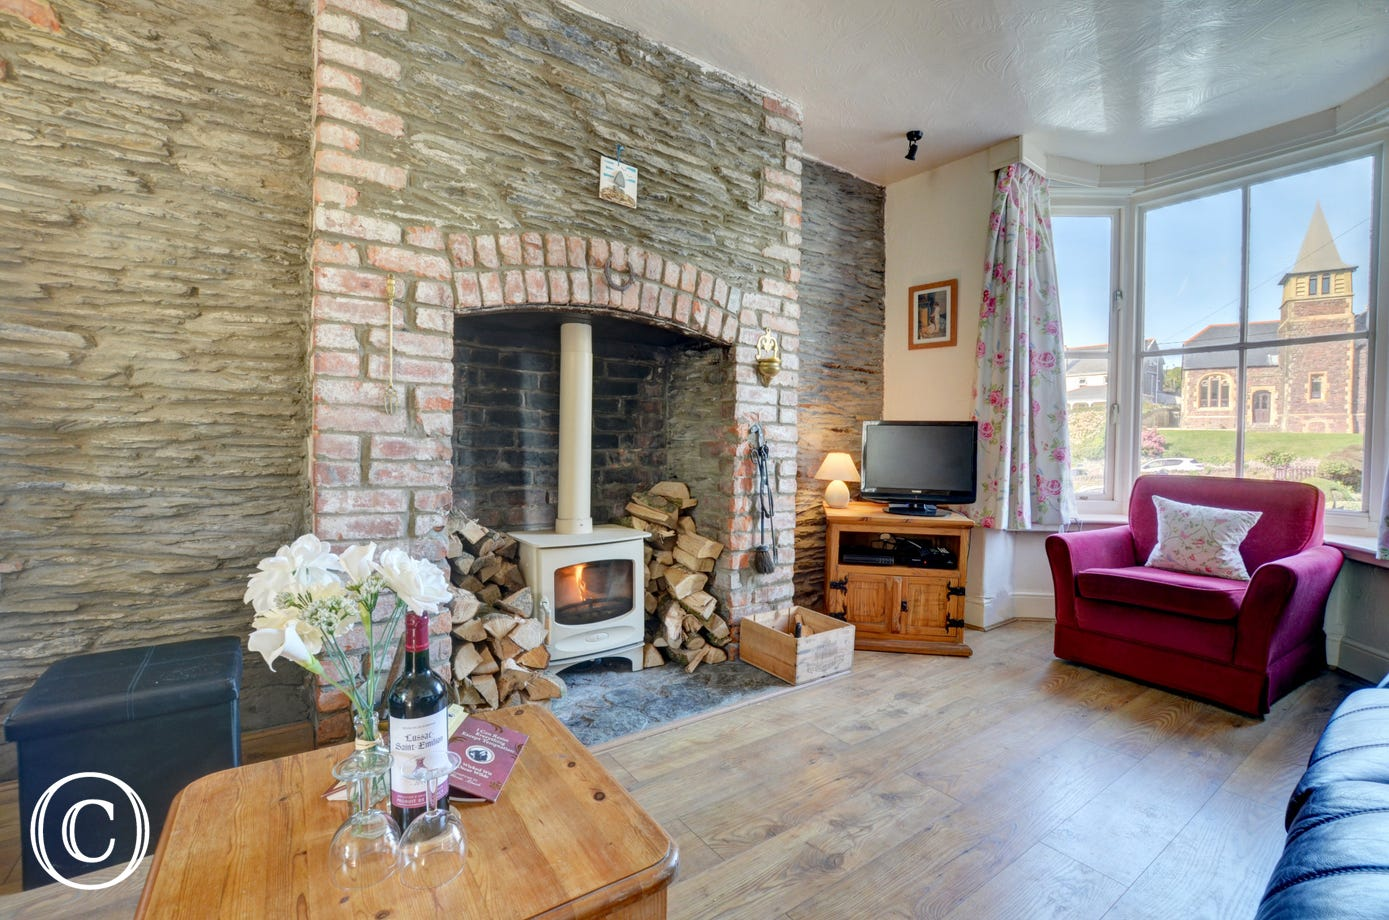 The woodburner makes the sitting room extremely cosy on cooler evenings